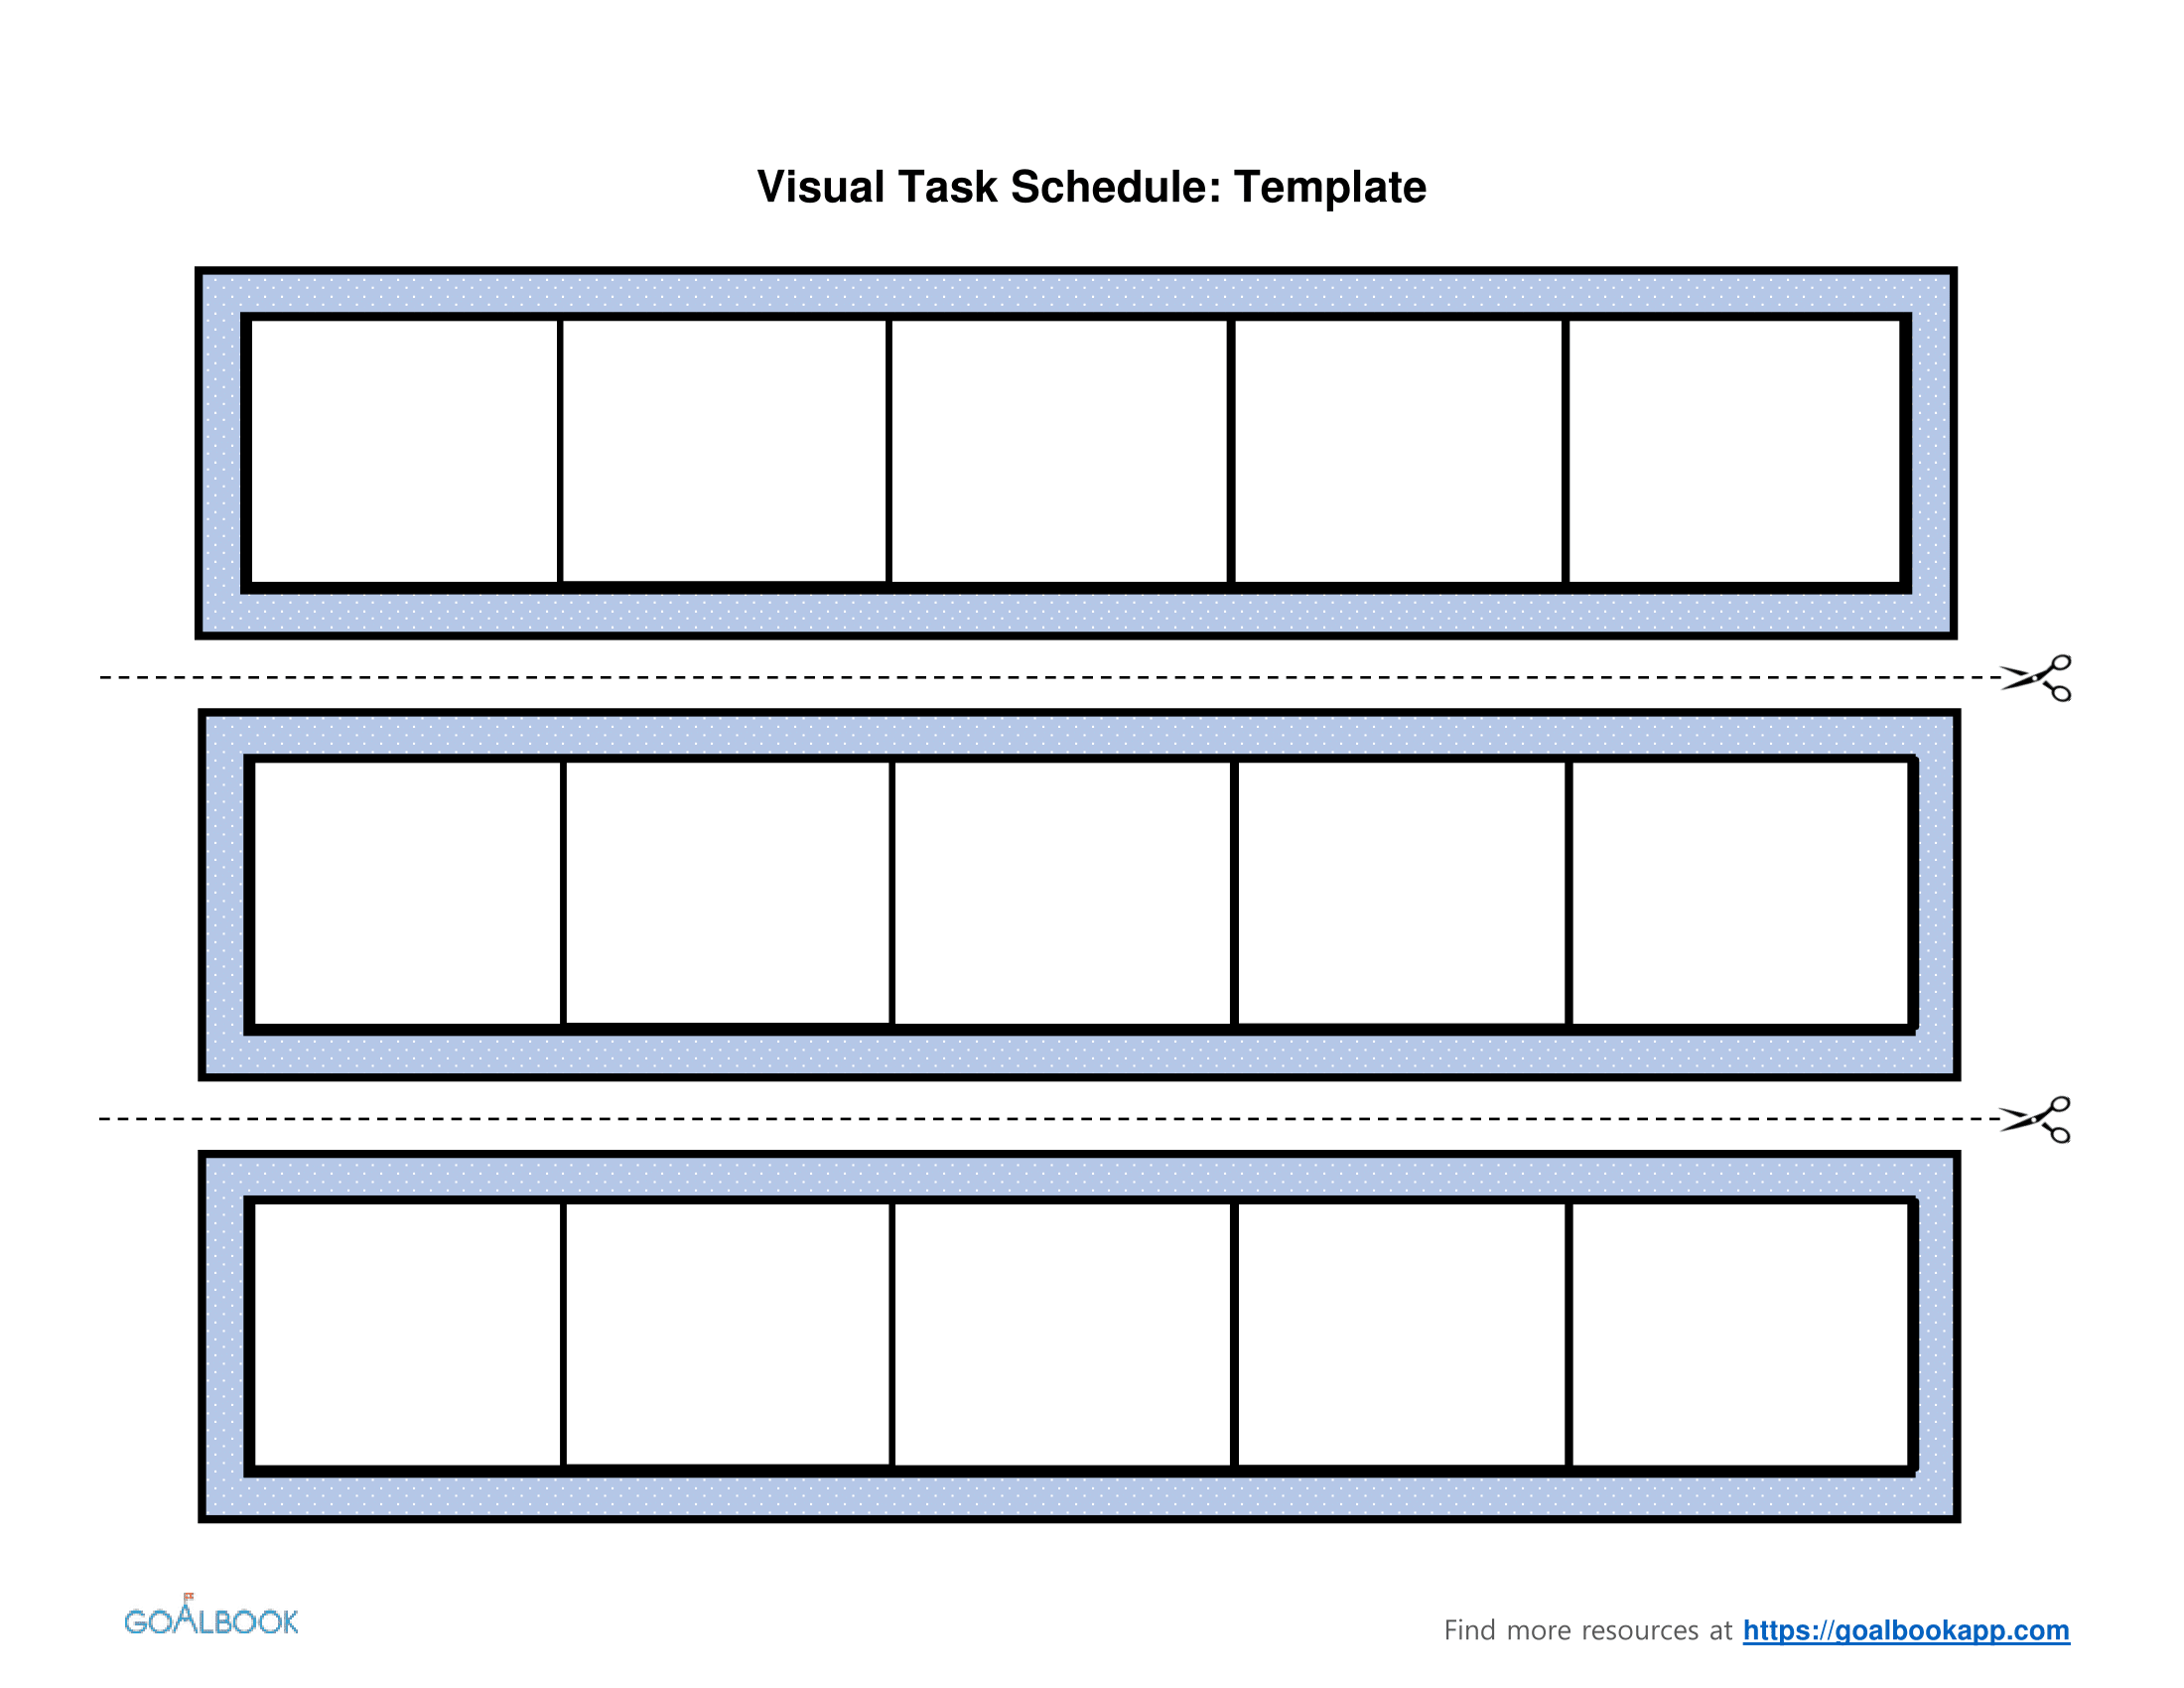 Visual Schedule Template by Speech by Schmitz | Teachers Pay Teachers